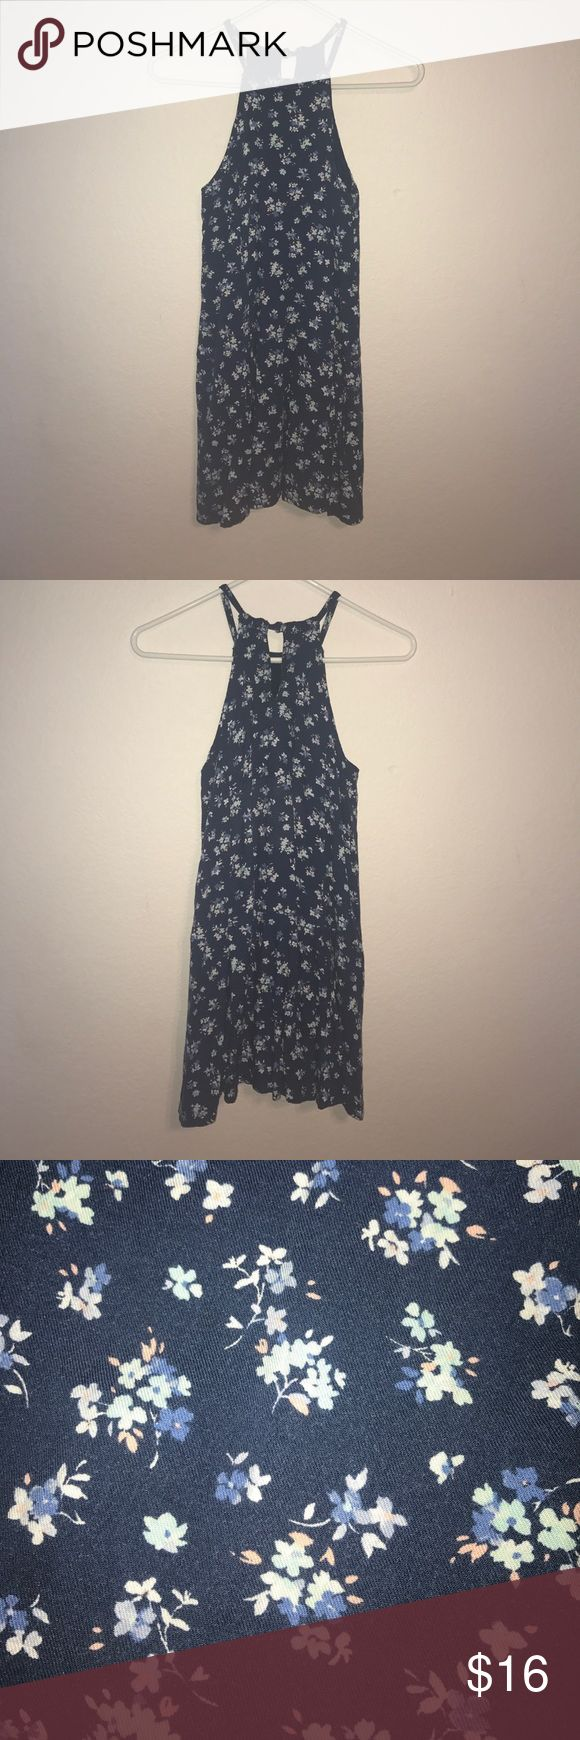 Abercrombie Kids navy, high neck, floral dress The dress has a keyhole back and a blue and white floral print. Mid to upper thigh length. Worn but in good condition- no stains or holes abercrombie kids Dresses Casual